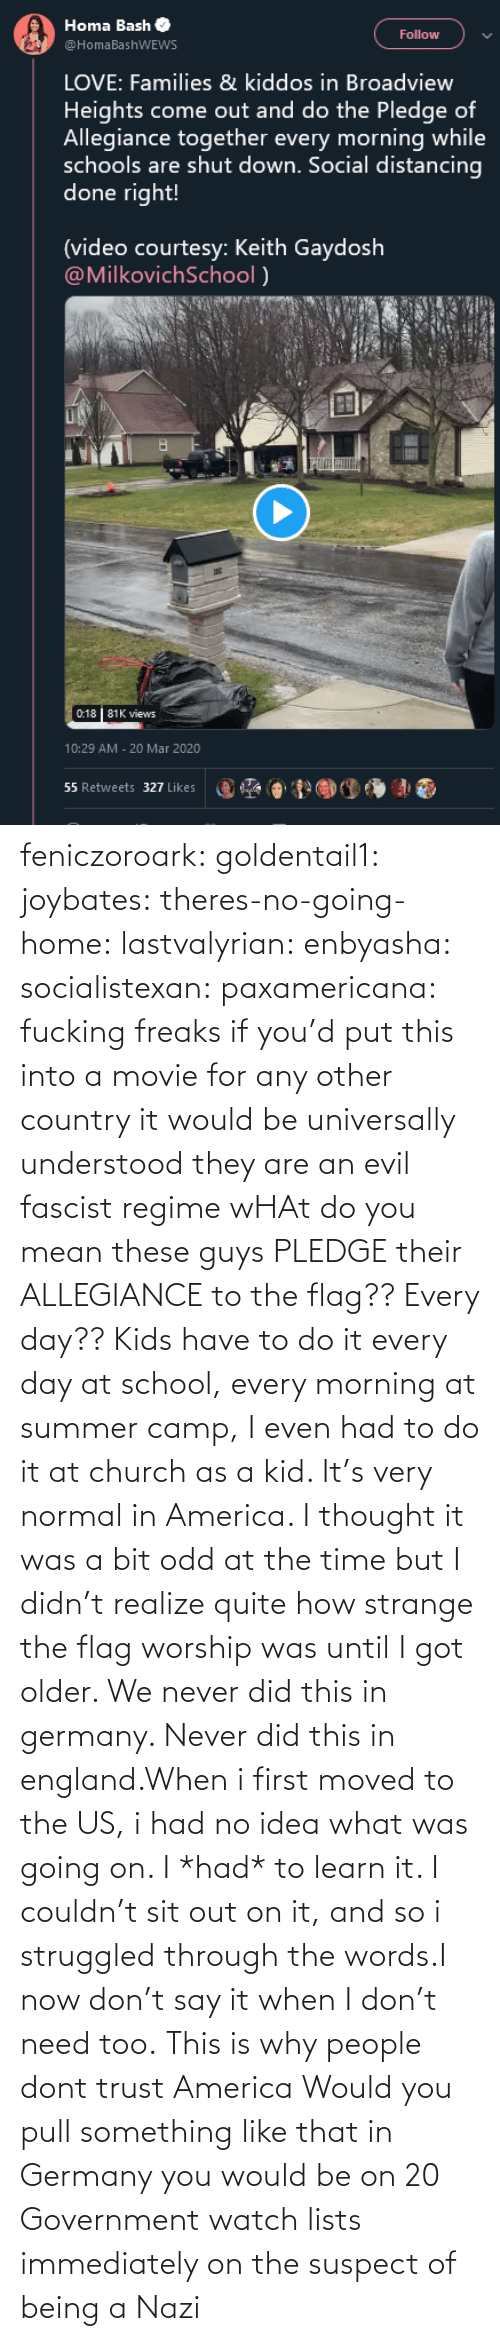 On It: feniczoroark:  goldentail1:  joybates:  theres-no-going-home:  lastvalyrian:  enbyasha:  socialistexan:  paxamericana: fucking freaks       if you'd put this into a movie for any other country it would be universally understood they are an evil fascist regime    wHAt do you mean these guys PLEDGE their ALLEGIANCE to the flag?? Every day??   Kids have to do it every day at school, every morning at summer camp, I even had to do it at church as a kid. It's very normal in America. I thought it was a bit odd at the time but I didn't realize quite how strange the flag worship was until I got older.    We never did this in germany. Never did this in england.When i first moved to the US, i had no idea what was going on. I *had* to learn it. I couldn't sit out on it, and so i struggled through the words.I now don't say it when I don't need too.   This is why people dont trust America    Would you pull something like that in Germany you would be on 20 Government watch lists immediately on the suspect of being a Nazi